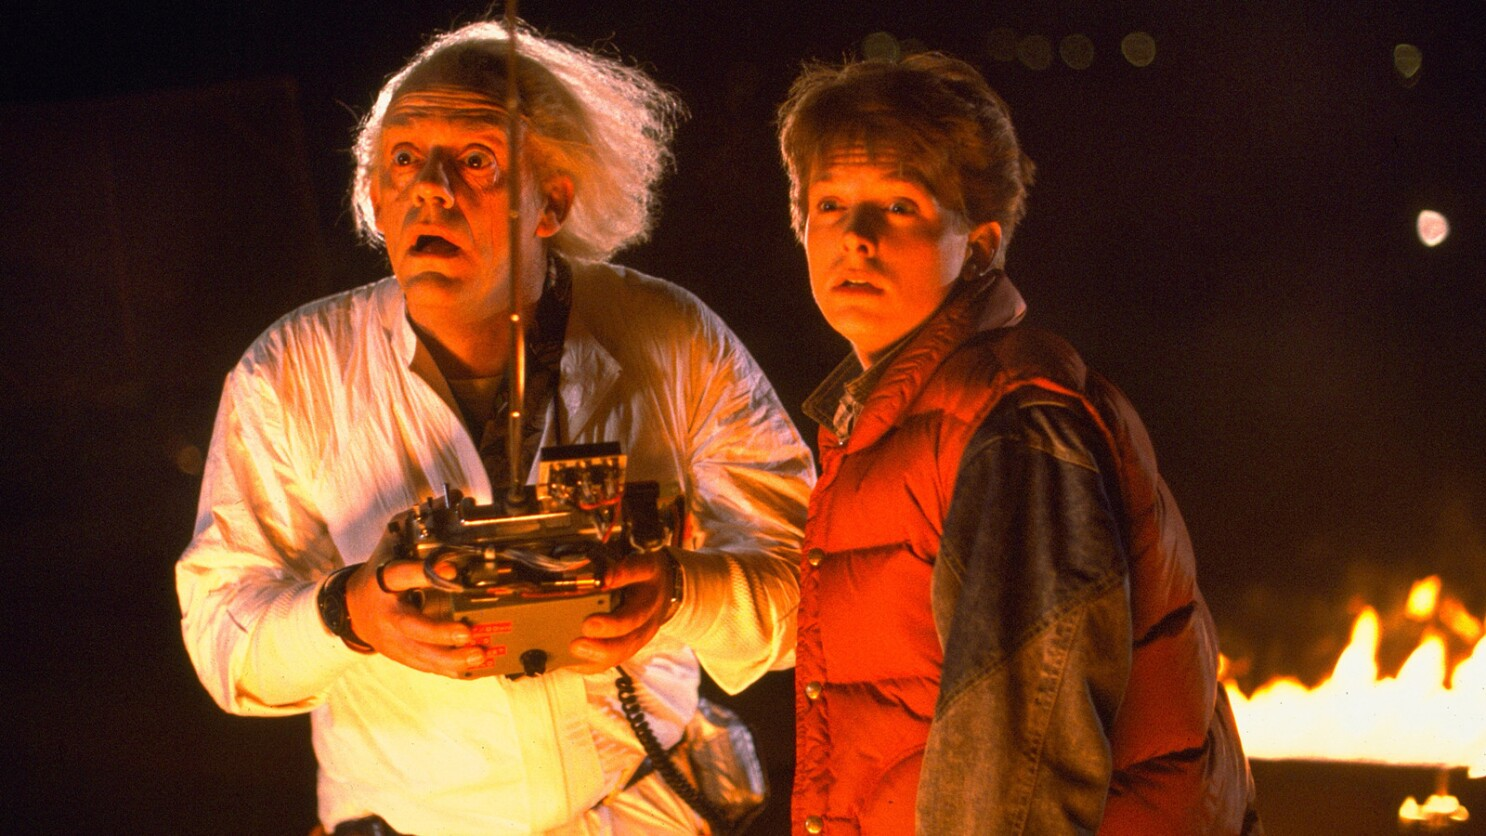 Our critics take a closer look at 'Back to the Future' at 35 - Los Angeles  Times